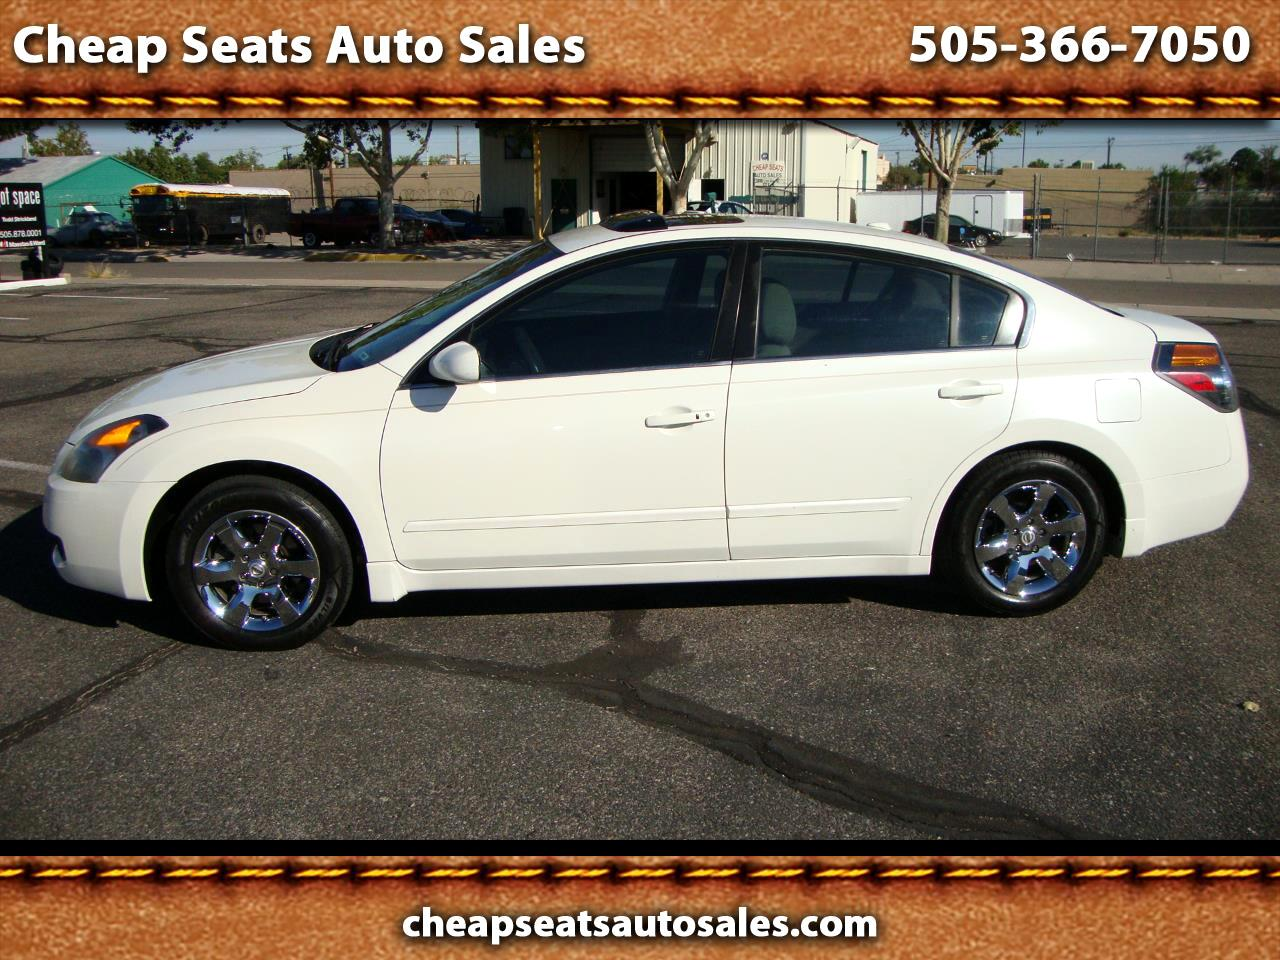 Nissan Altima 2009 for Sale in Albuquerque, NM